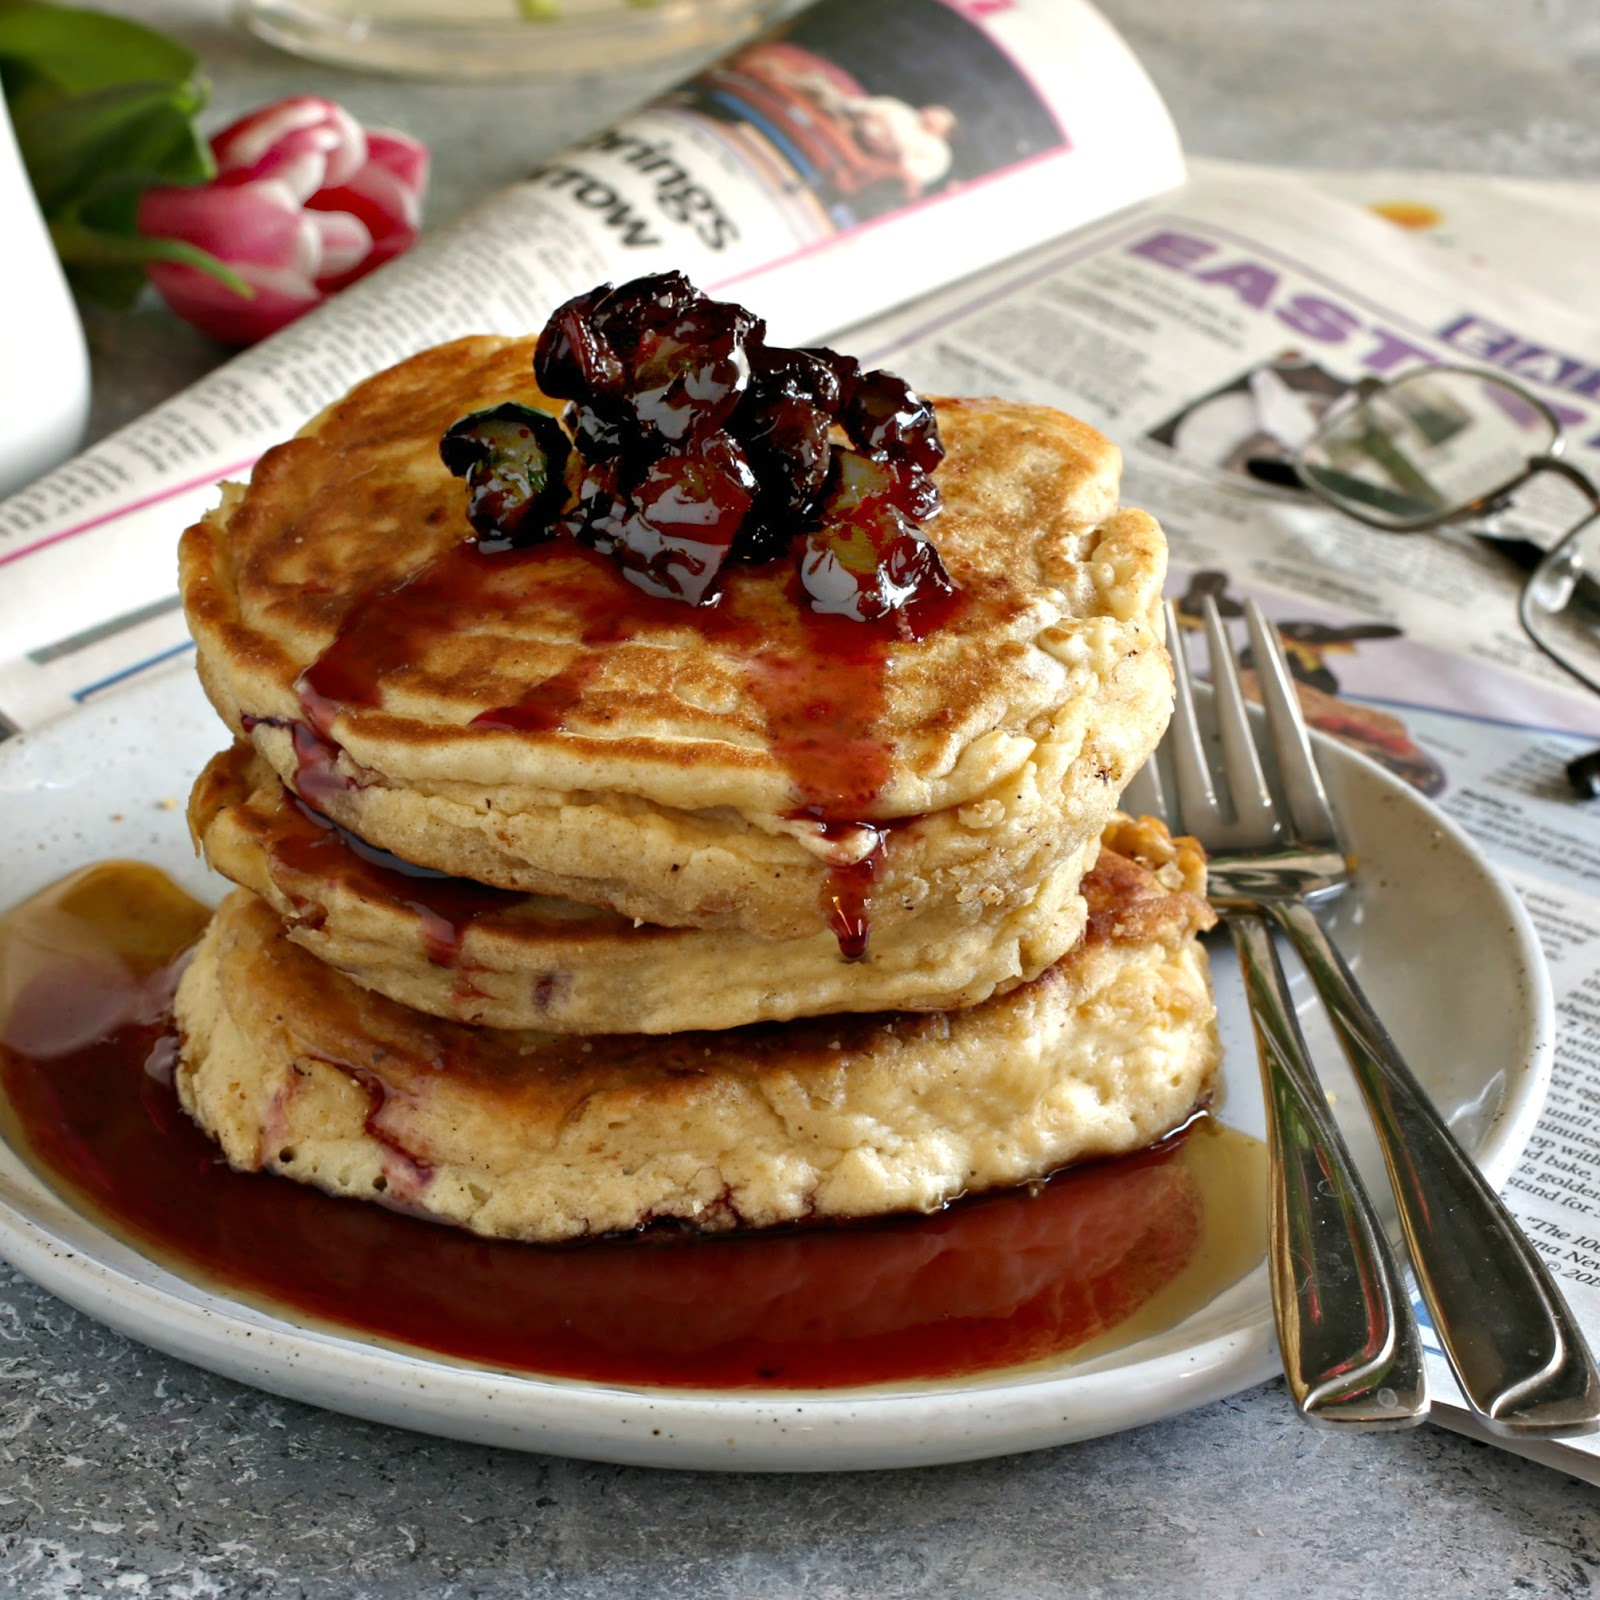 Extra fluffy pancakes made with whole eggs and beaten egg whites.